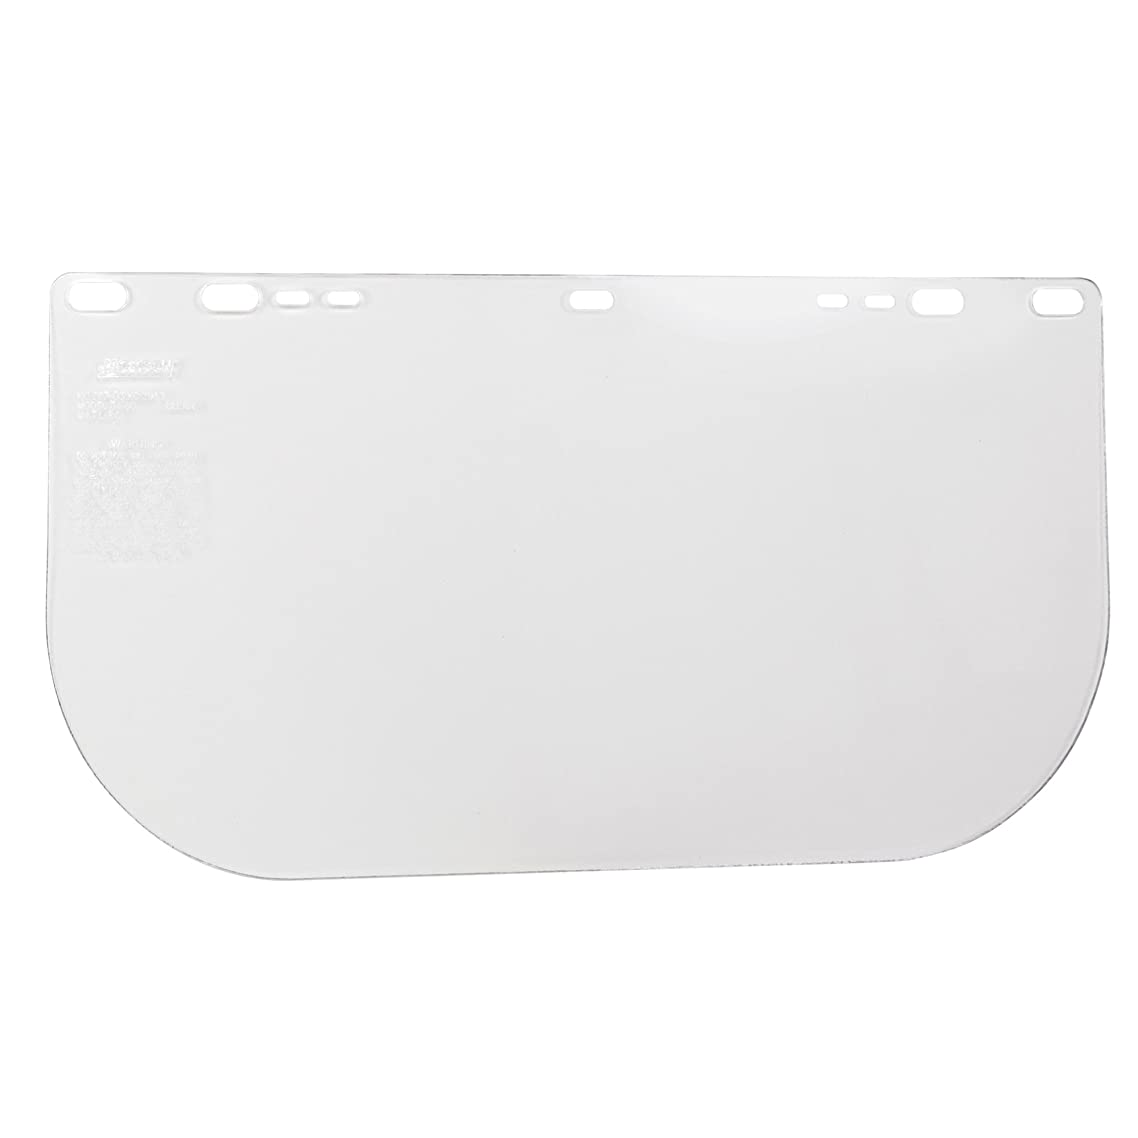 """Jackson Safety F20 High Impact Face Shield (29109), Polycarbonate, 8"""" x 15.5"""" x 0.06"""", Clear, Face Protection, Unbound, 12 Shields / Case"""